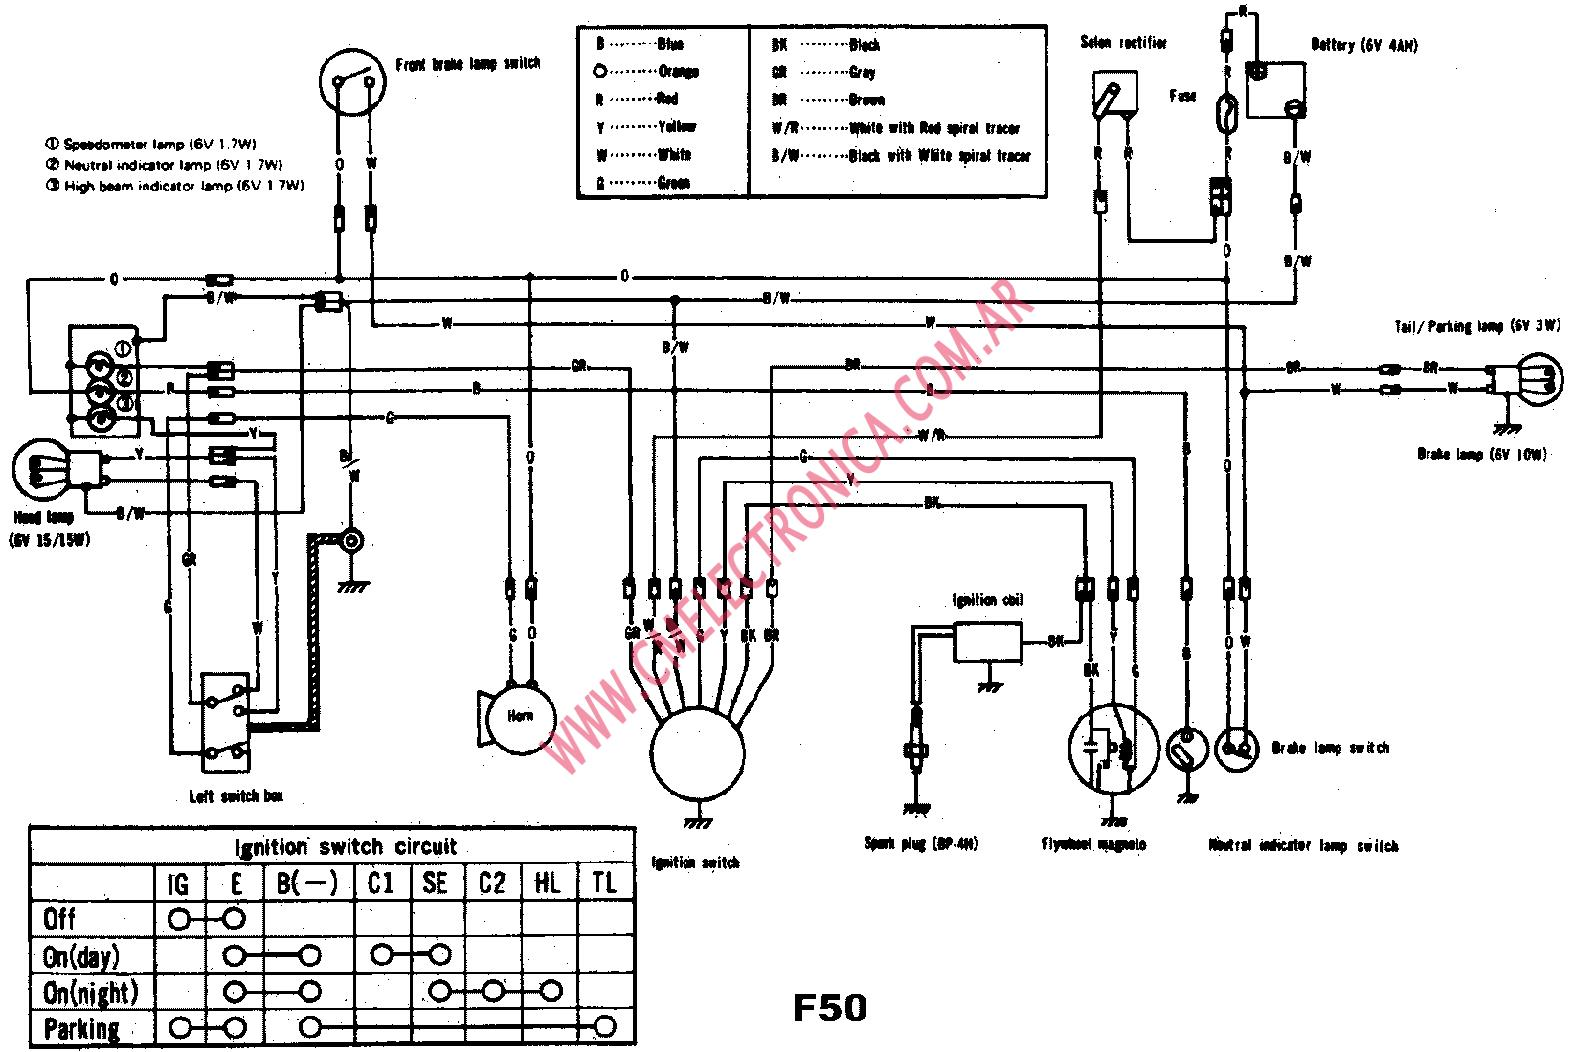 wiring diagram for a 1996 suzuki intruder 1400  suzuki